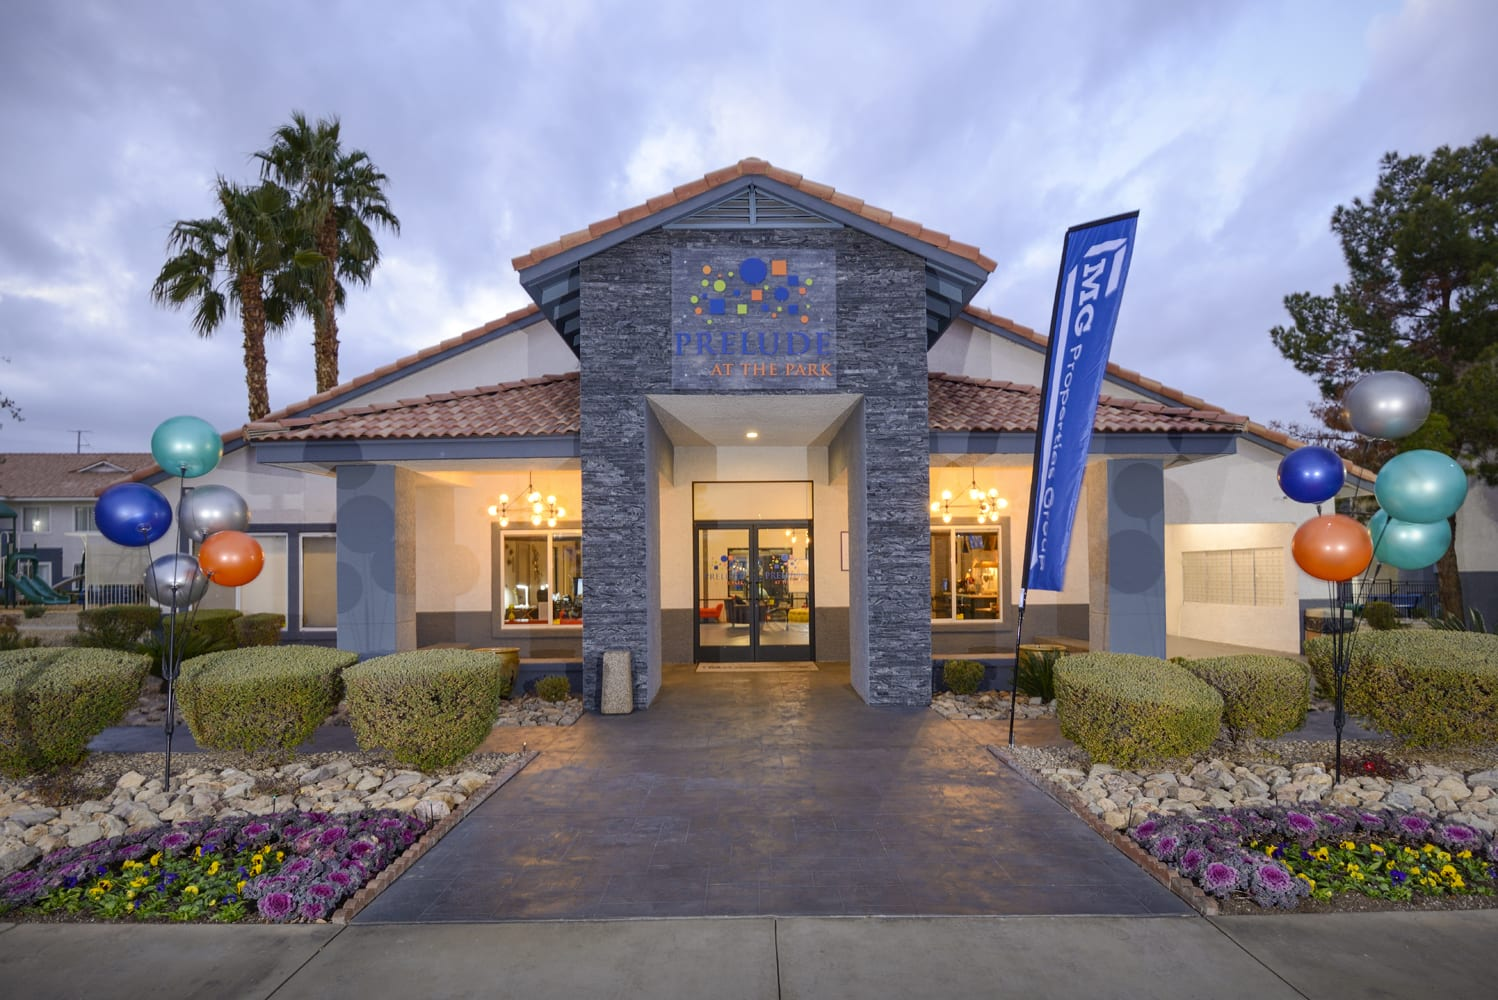 Modern Yet Classic Design at Prelude at the Park, Henderson, NV